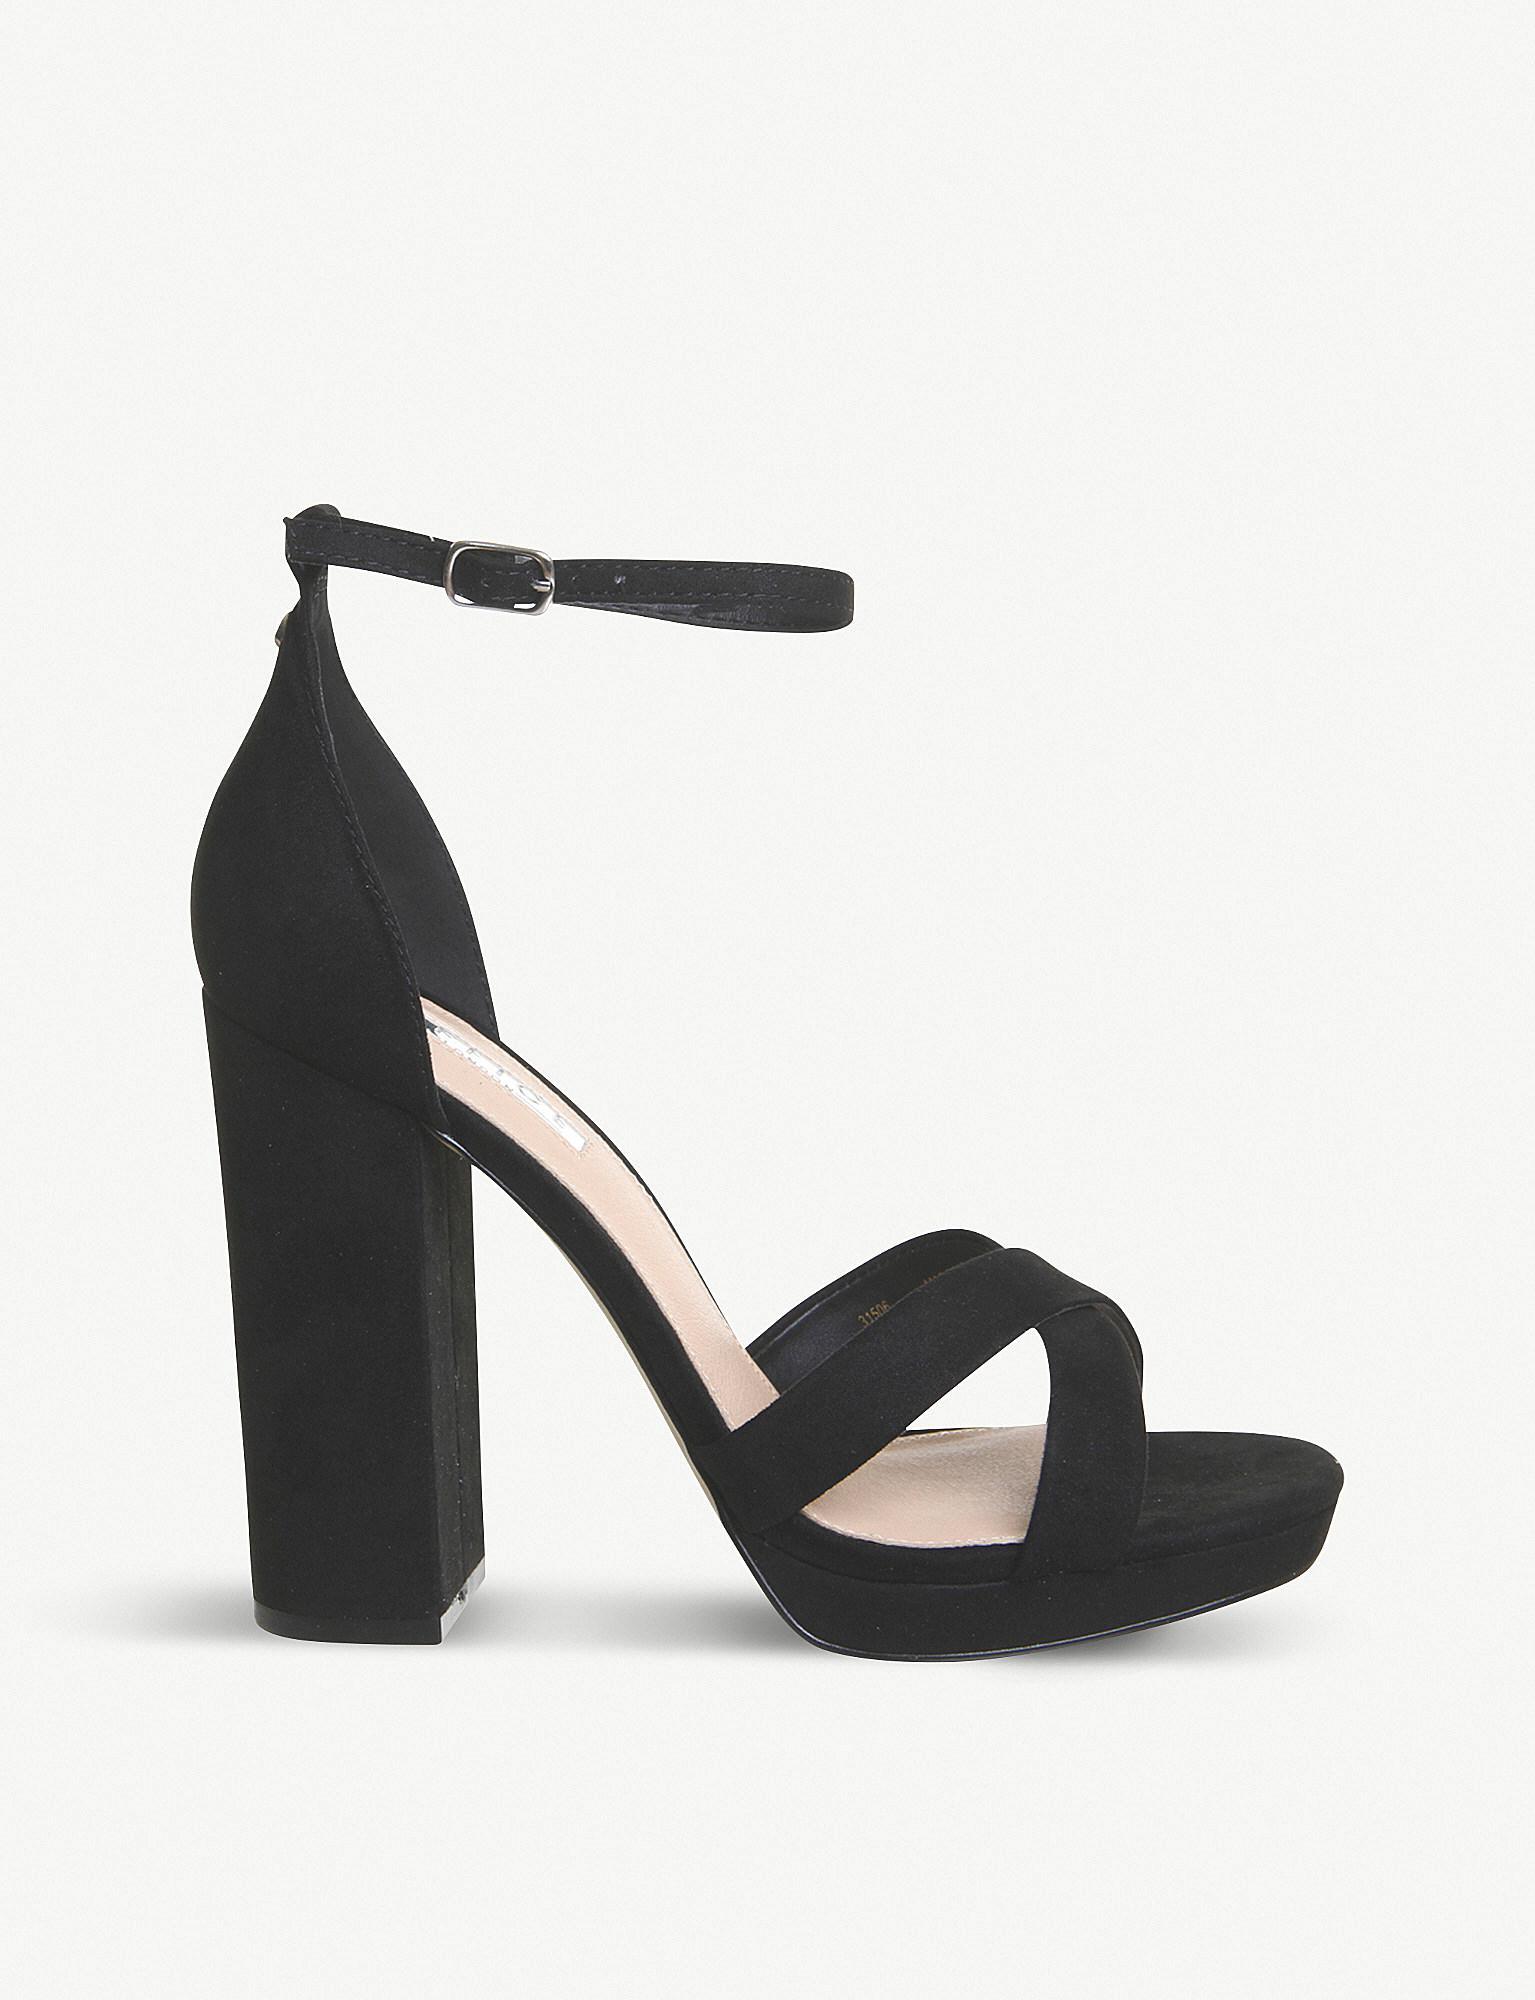 5d9f6b36d1a9b1 Office - Black Hiccup Faux-leather Platform-heeled Sandals - Lyst. View  fullscreen